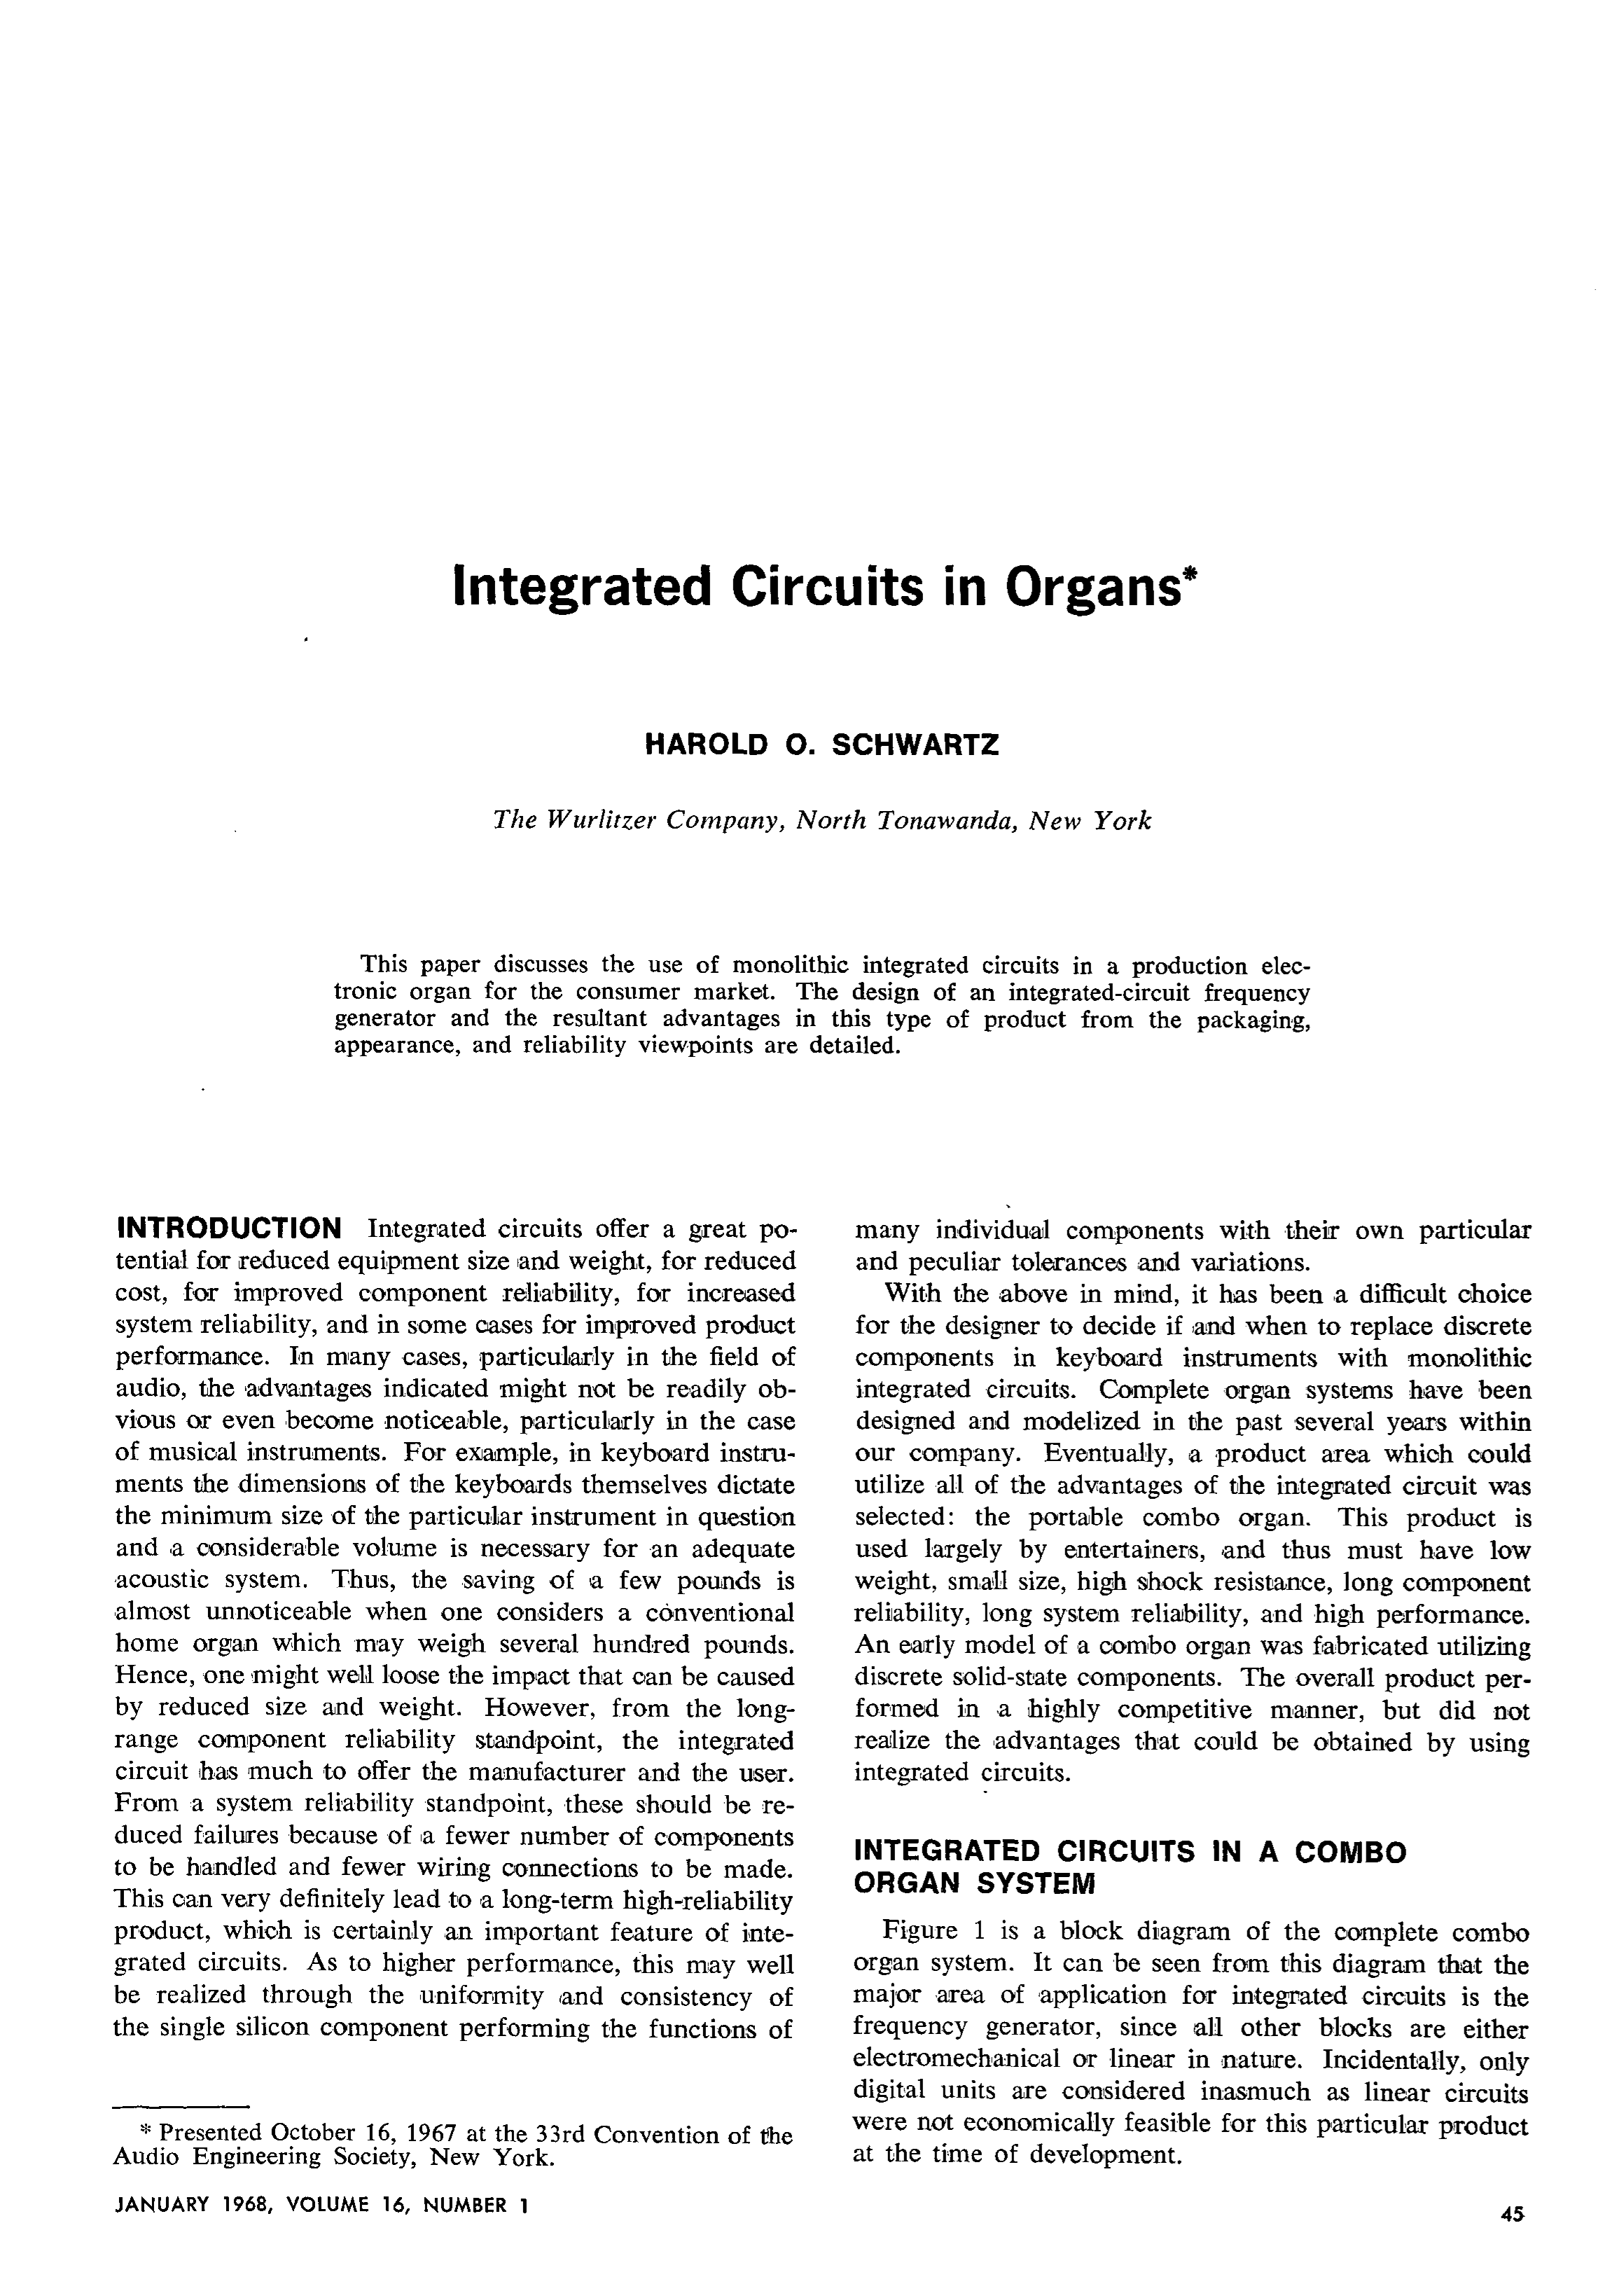 The History Of Integrated Circuits And Microchips Thumbnail Aes E Library In Organs